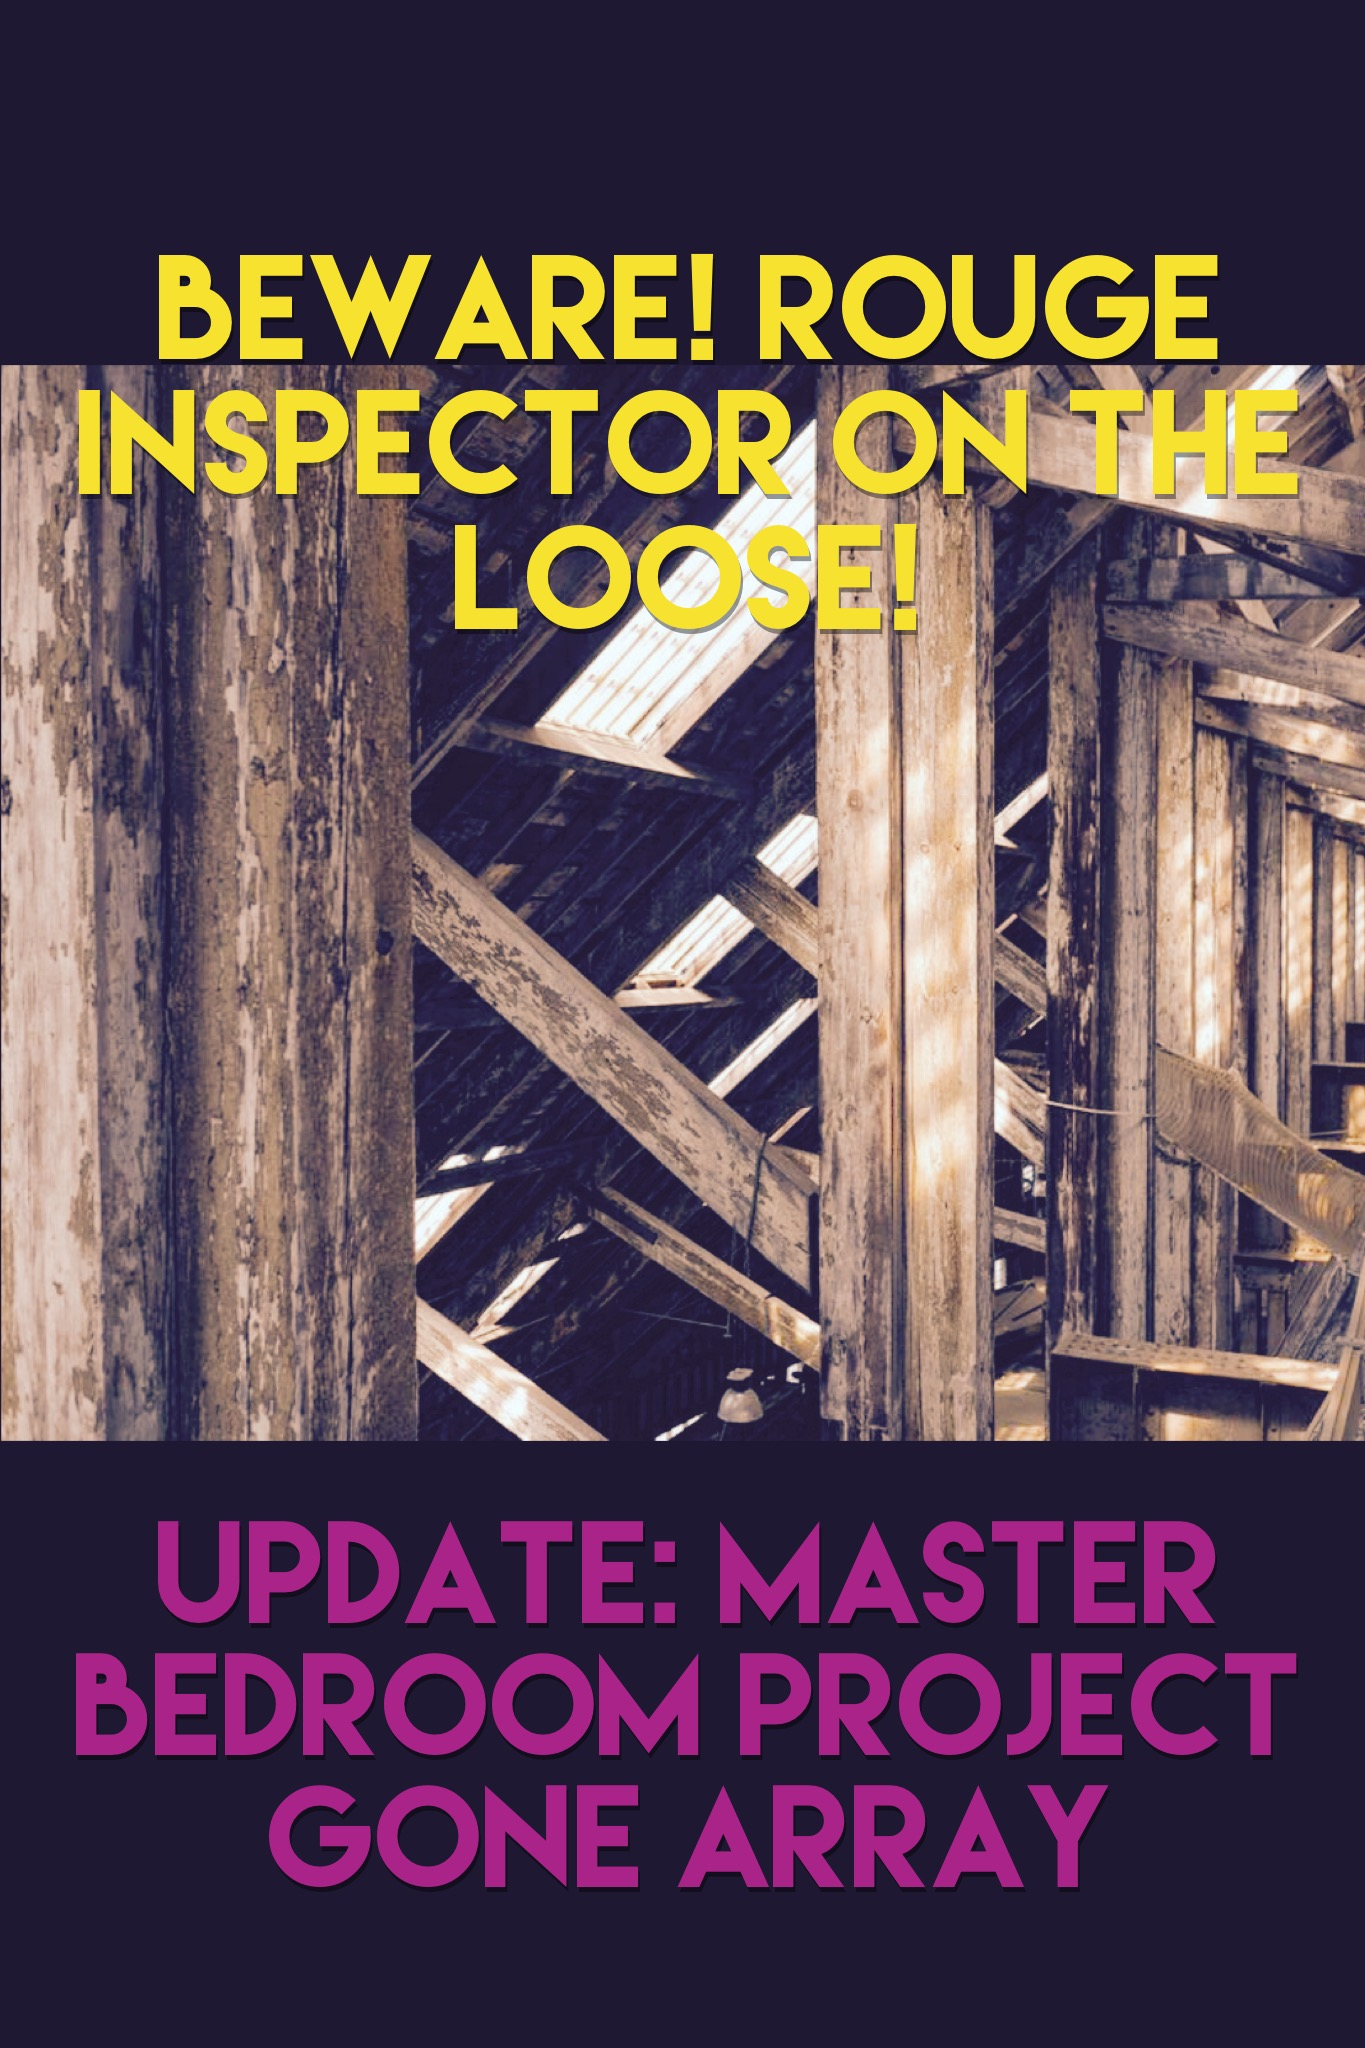 Rouge Home Inspector on the loose- how to fail a home inspection you didn't even sign up for. www.renovationrenegade.com